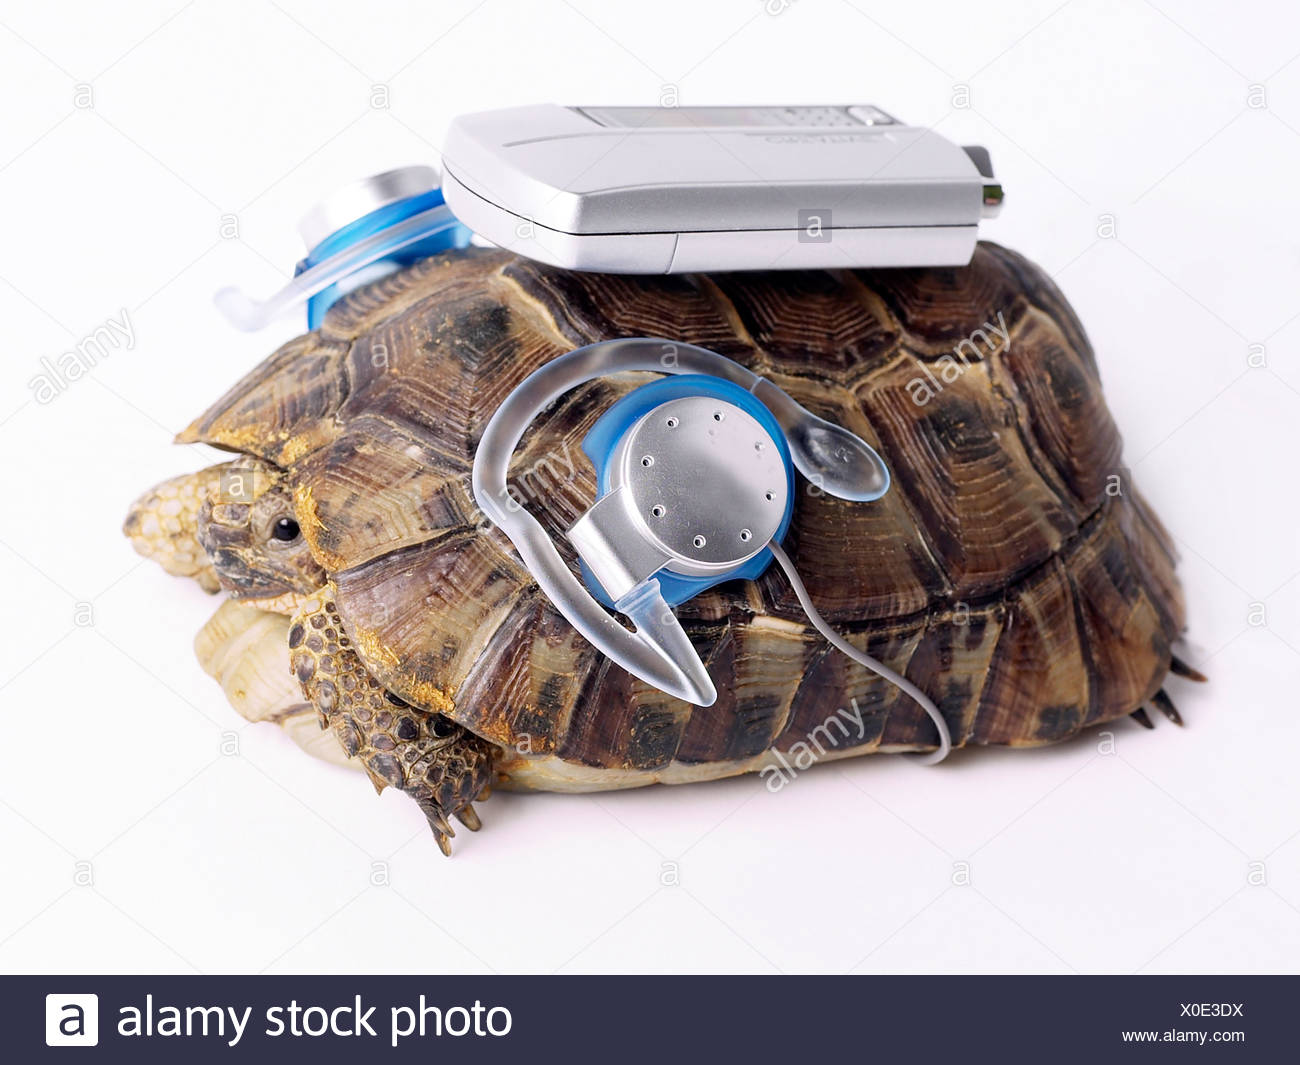 Tortoise with an MP3 player. - Stock Image